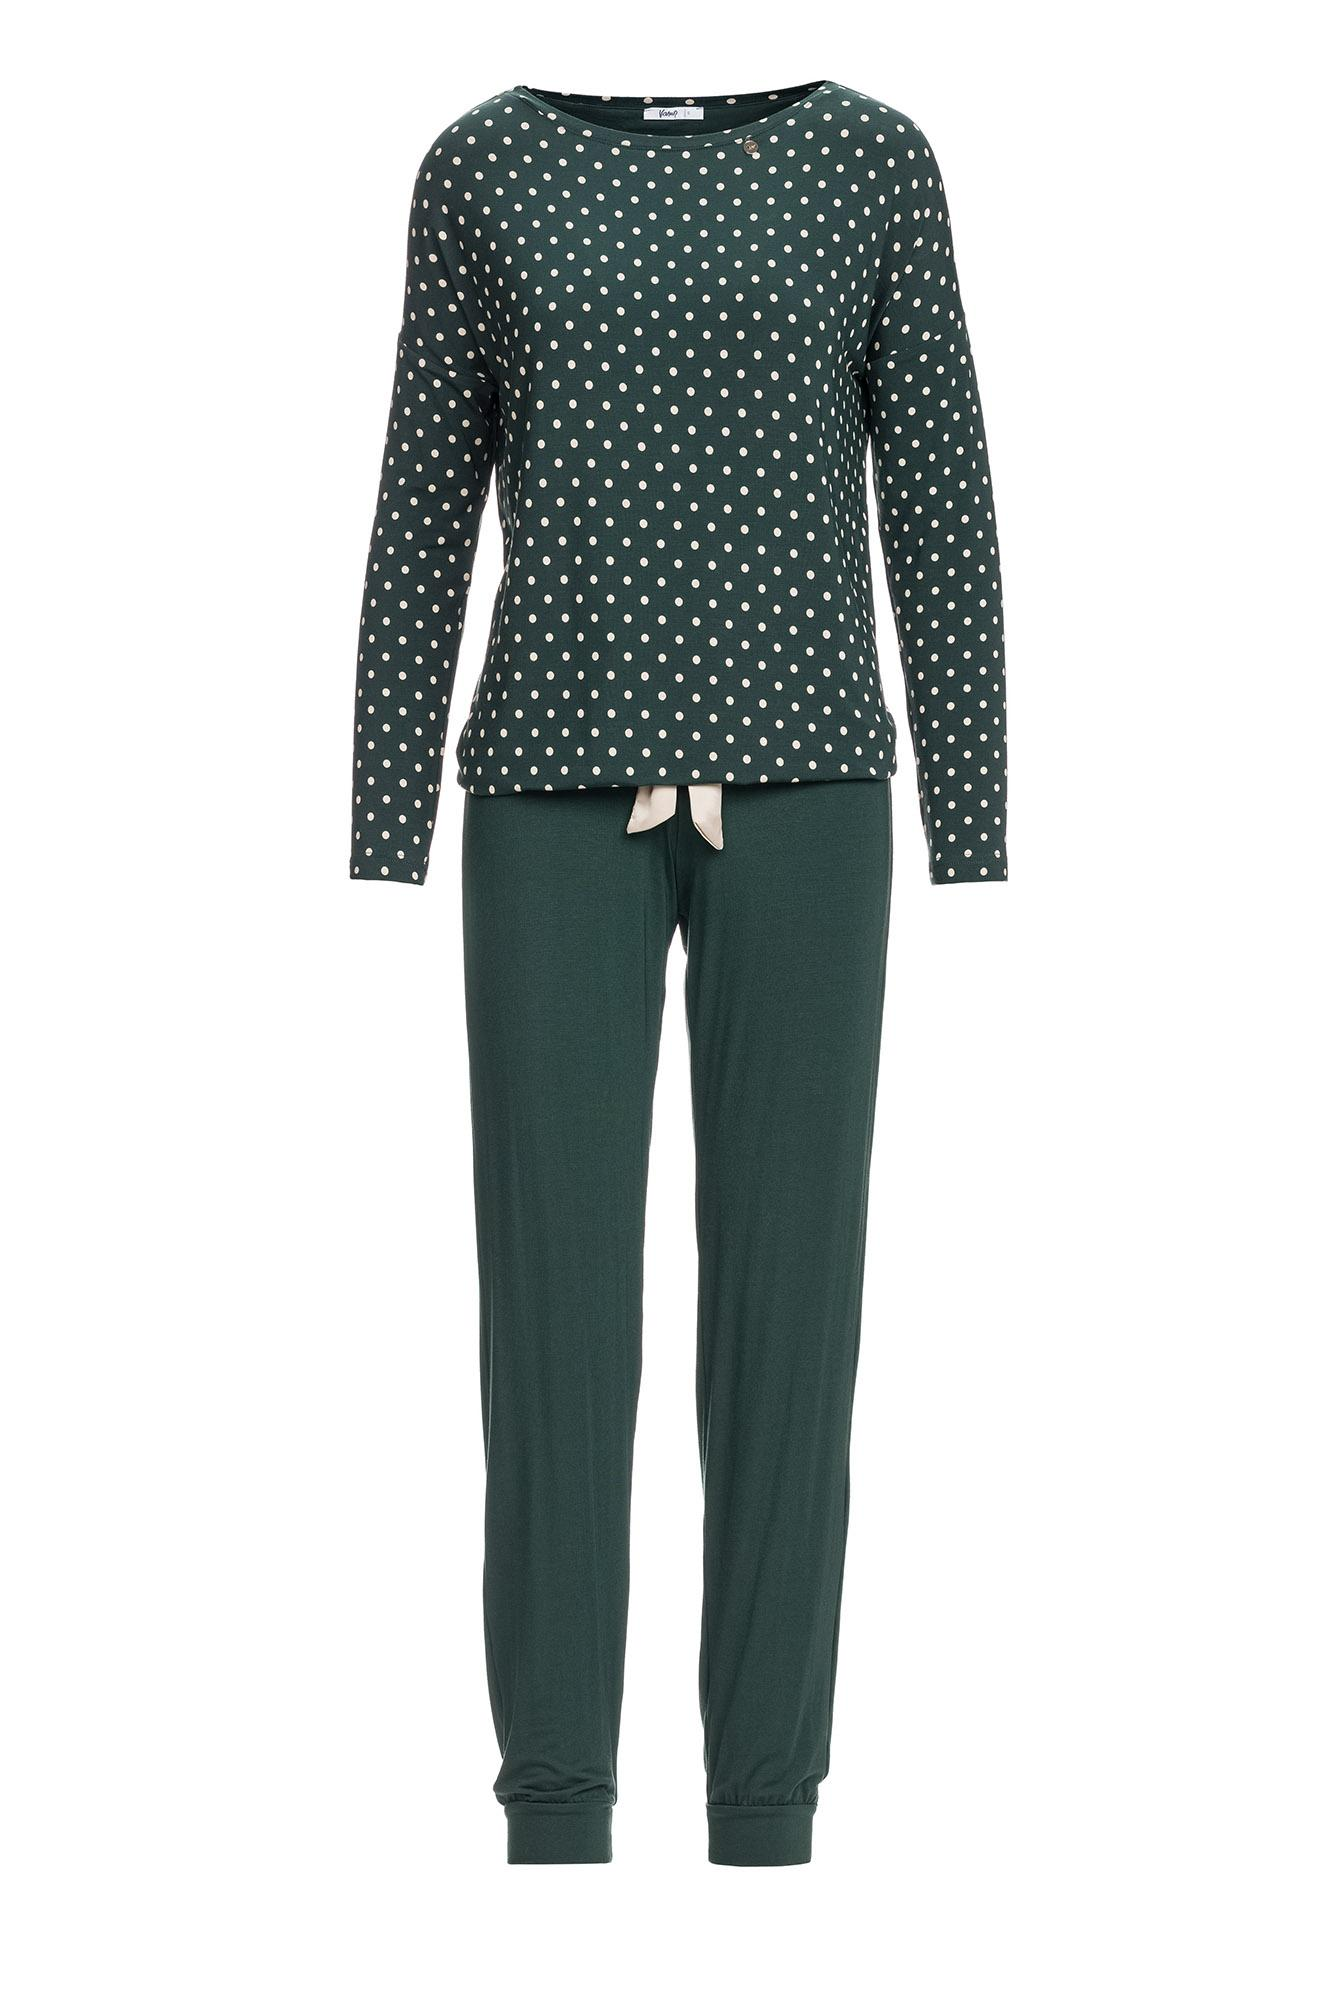 Women's Polka Dot Pyjamas